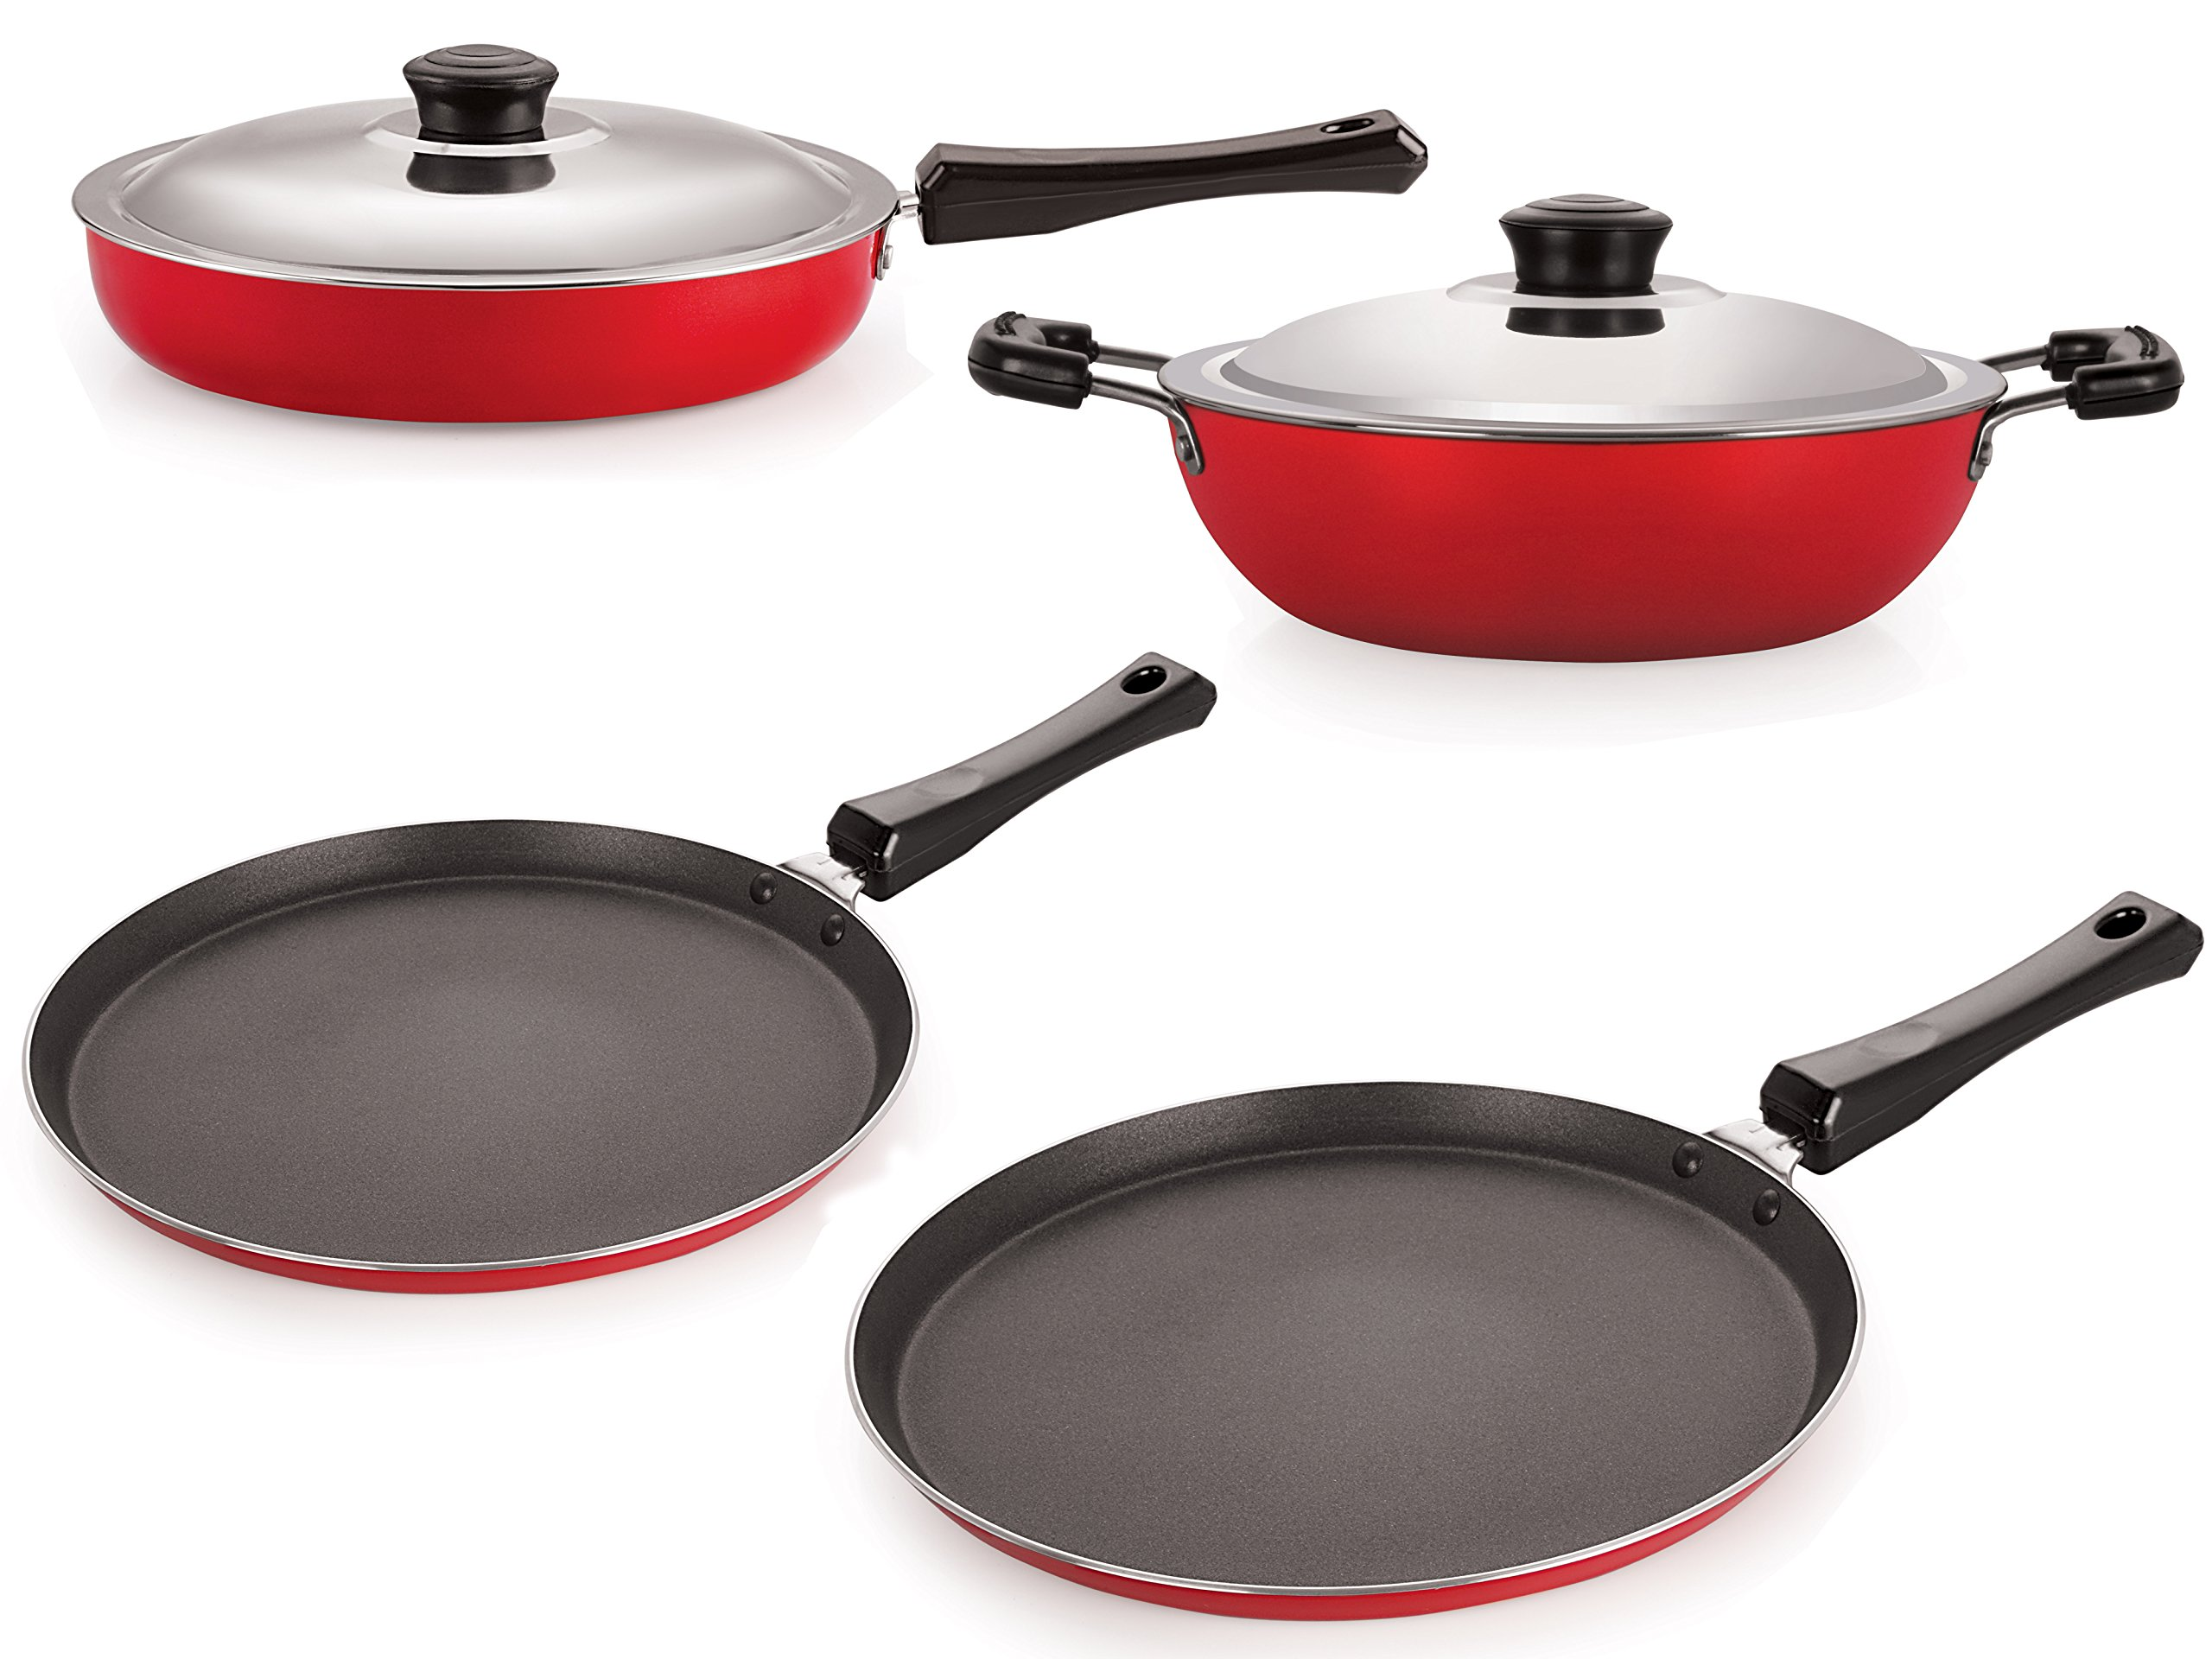 Nirlon Non-Stick Kitchenware Kitchen Cooking Utencil Combo Set Offer, (FT13_FP13_DKDB_FT10),Red  Black Color